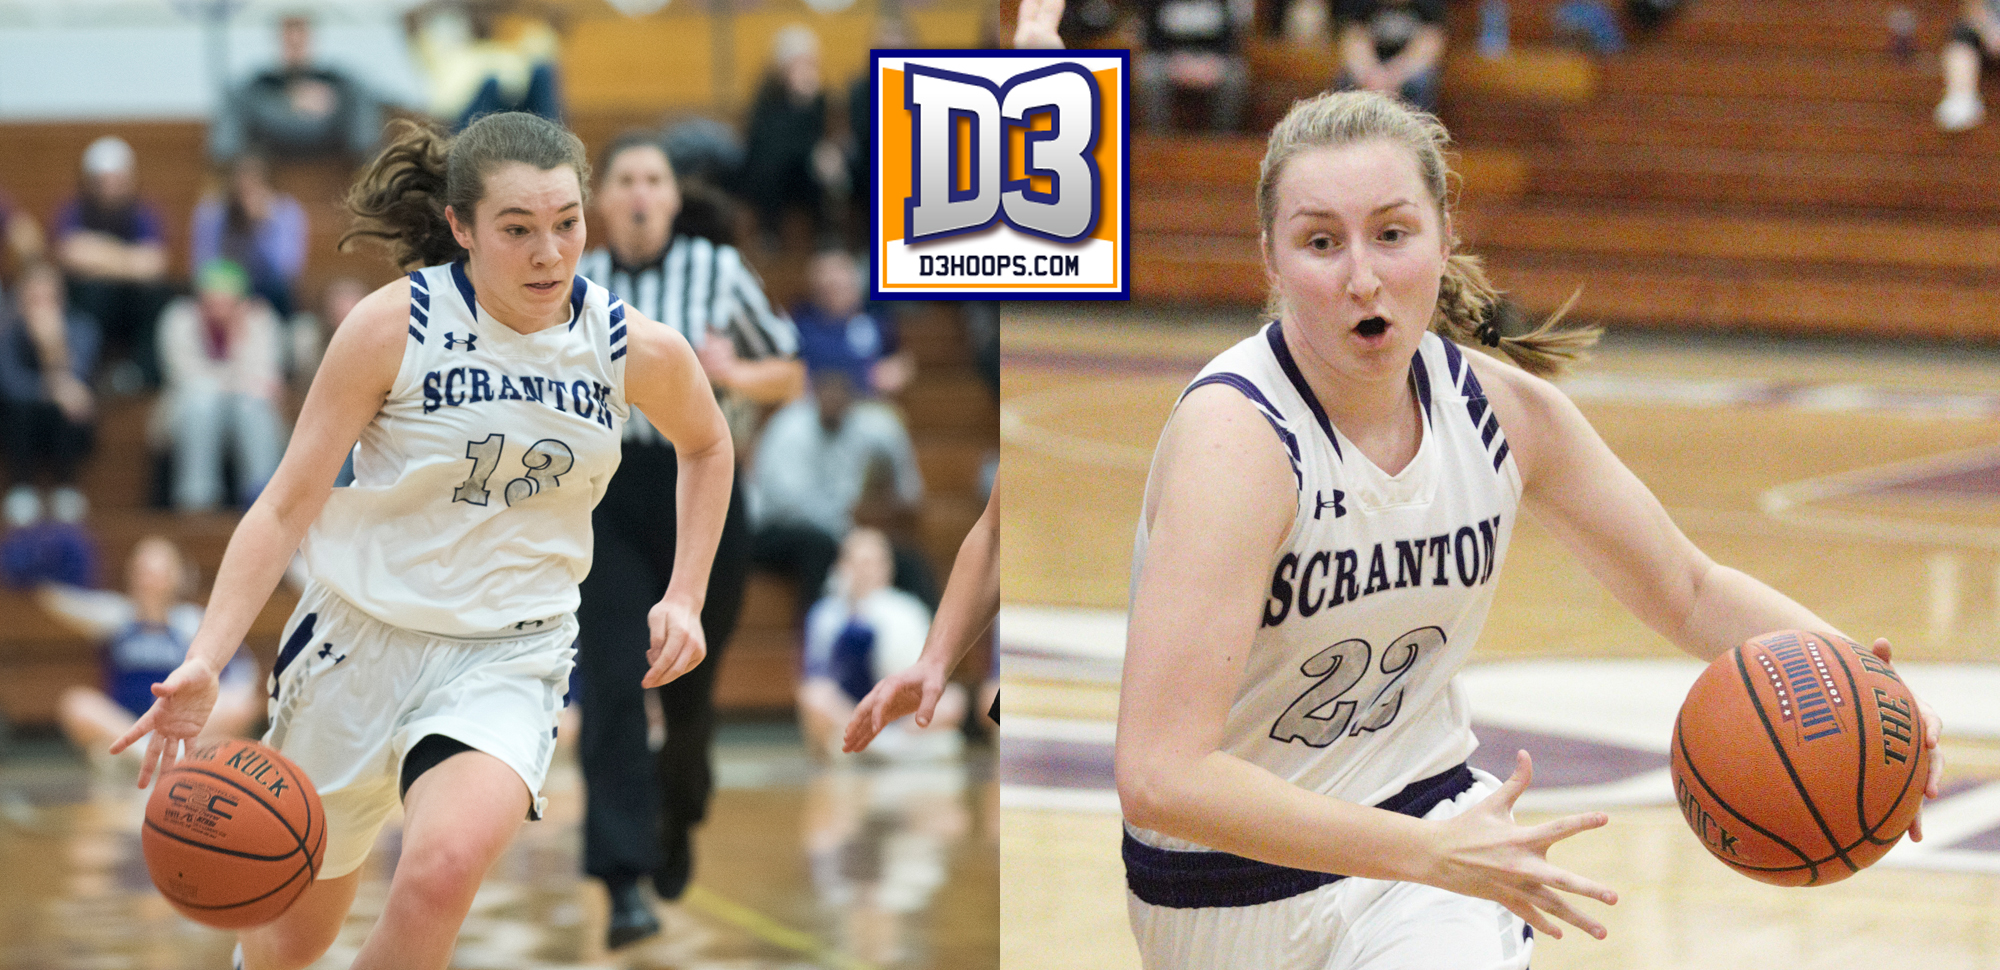 Bridgette Mann and Makenzie Mason both received All-Region honors from D3hoops.com on Tuesday.